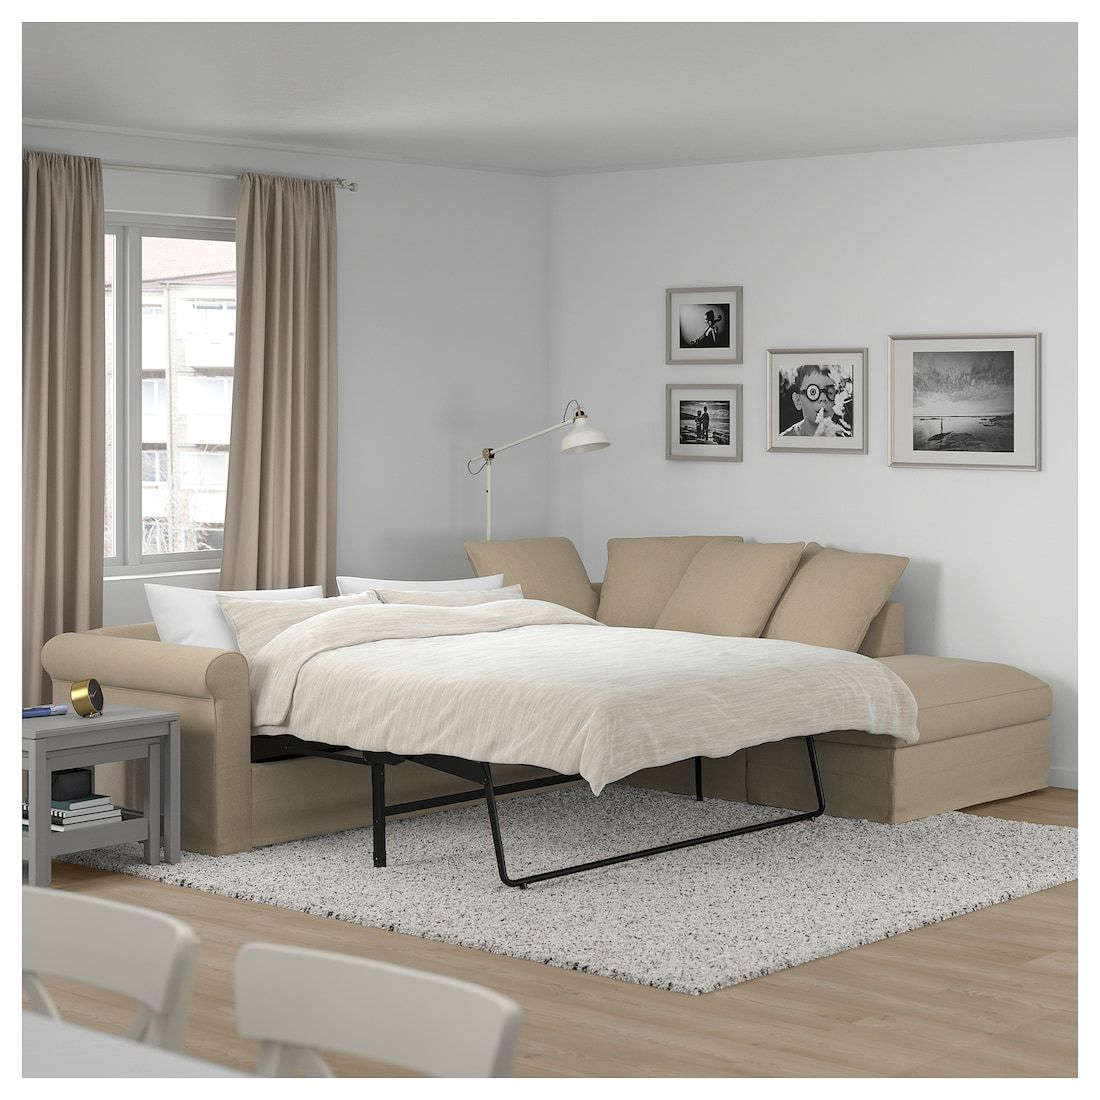 GRÖNLID 3 seat sofa bed with chaise longue, Inseros white